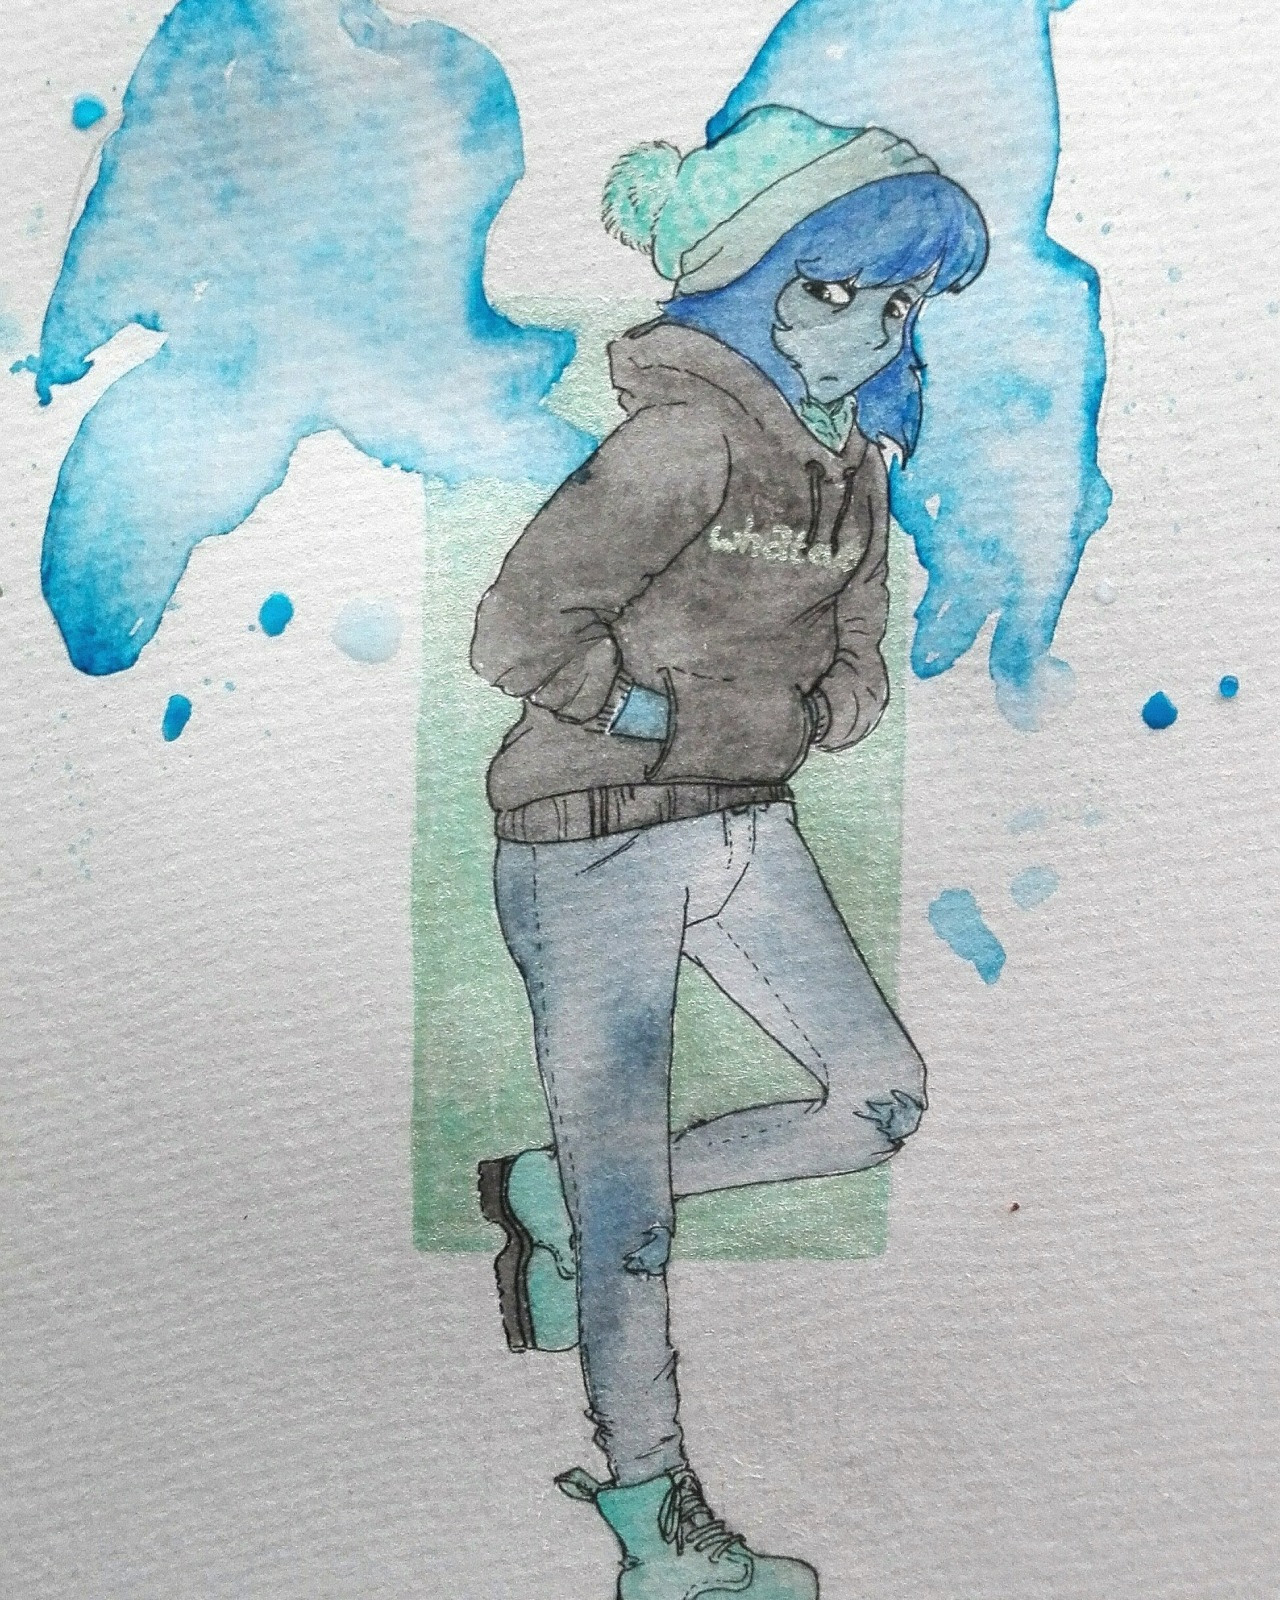 Today was shitty, here's a relatable Lapis